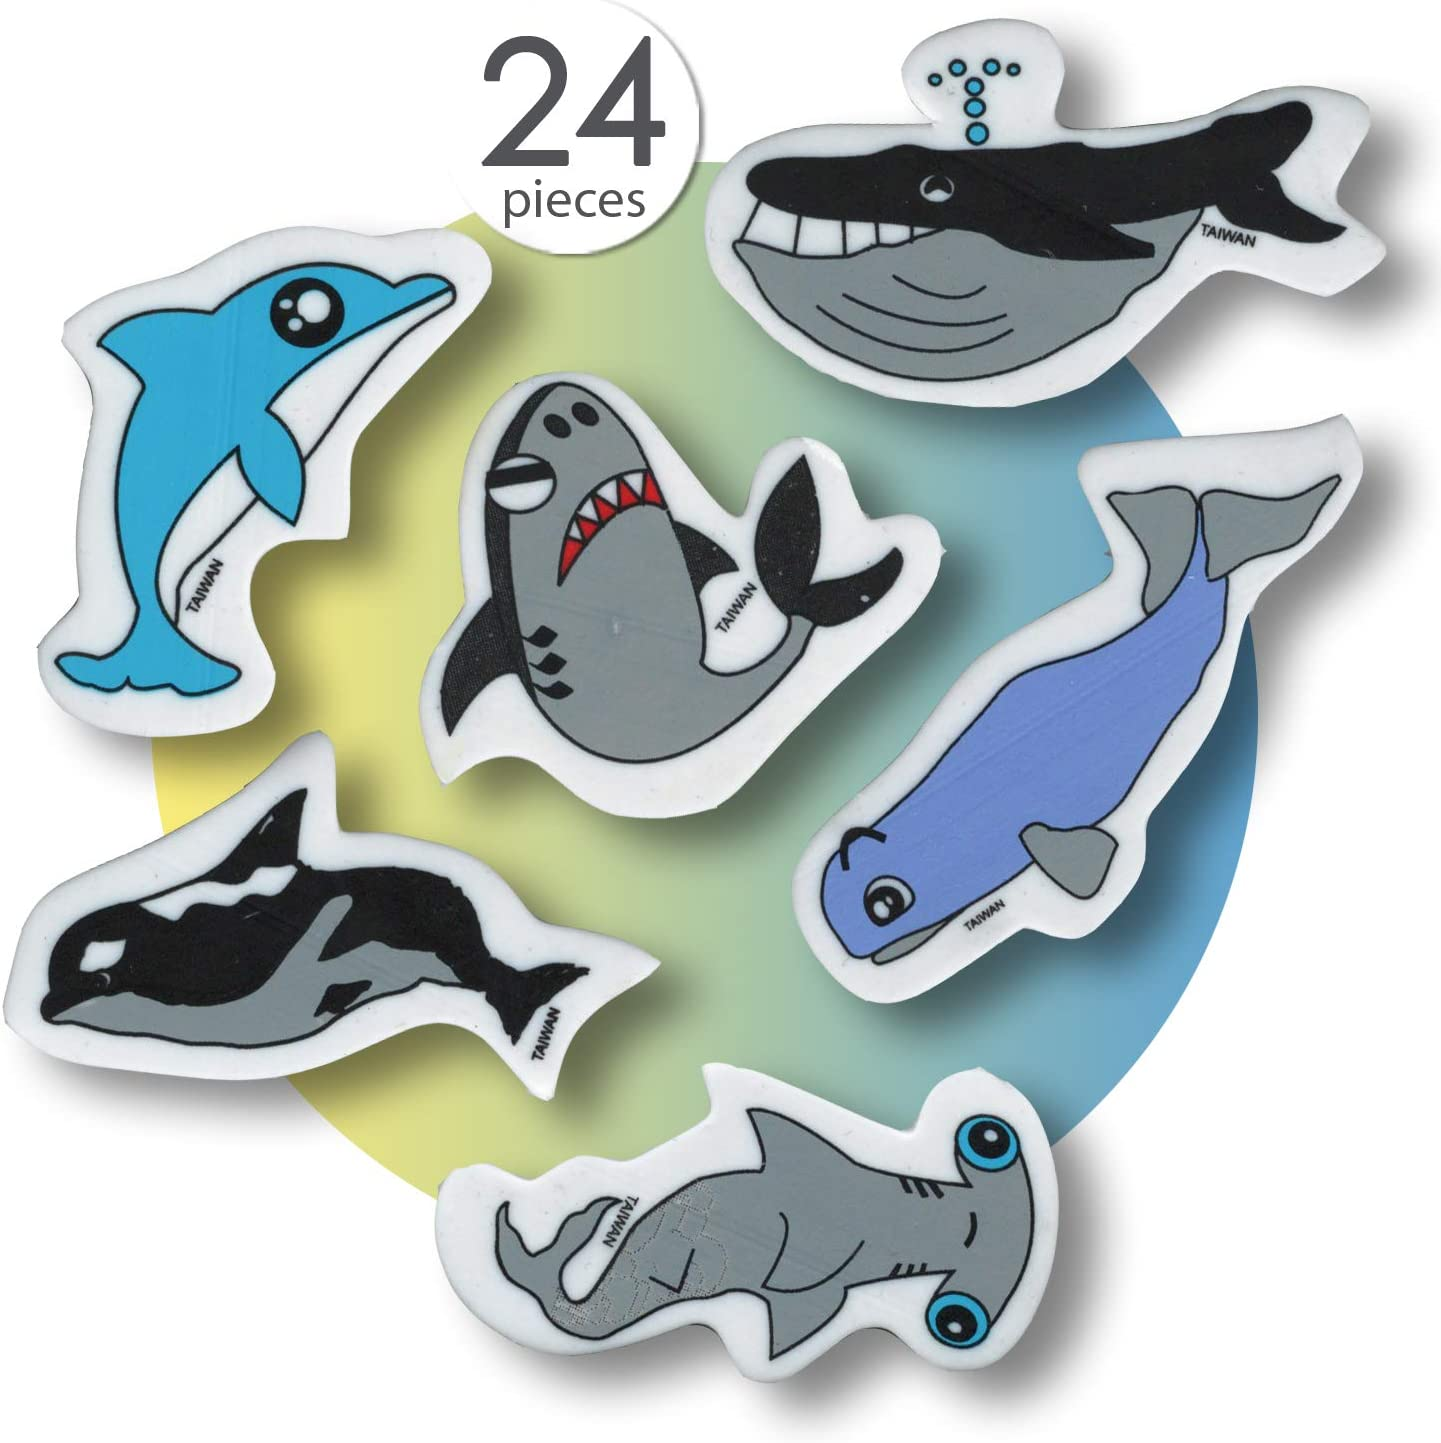 Fish Erasers for Kids Classroom Prizes Animal Erasers Pencil Eraser Prizes for Kids Classroom Cute Erasers Bulk Fun Erasers for School Cool Erasers Kids Erasers Novelty Erasers for Kids (24 Pcs)